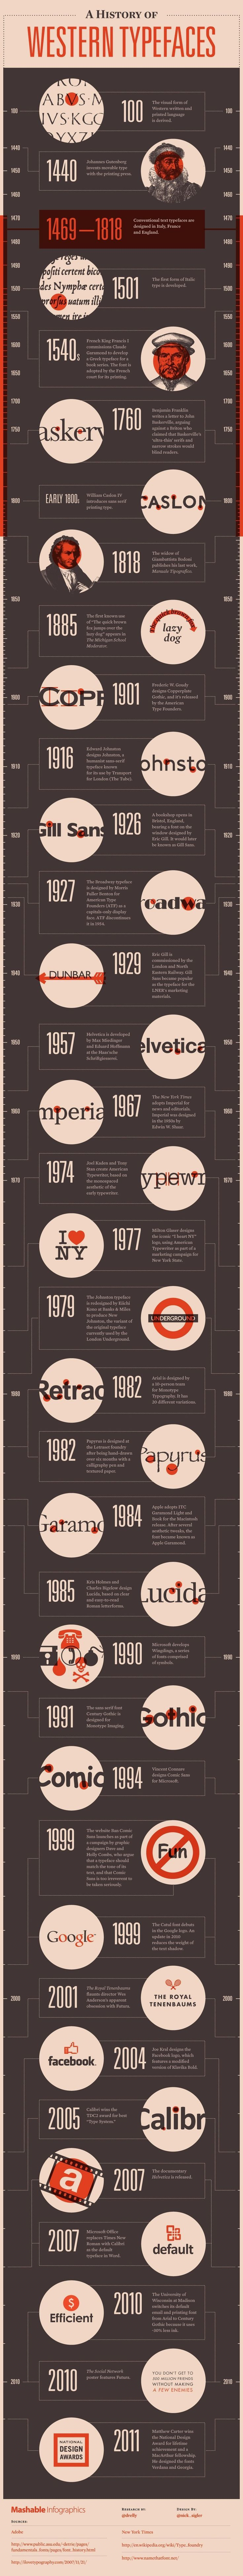 A History of Western Typefaces [INFOGRAPHIC]  -- The Fontography Series is supported by join.me, the easiest way to have an online meeting. join.me lets you instantly share your screen with anyone, for free. Use it to collabor...